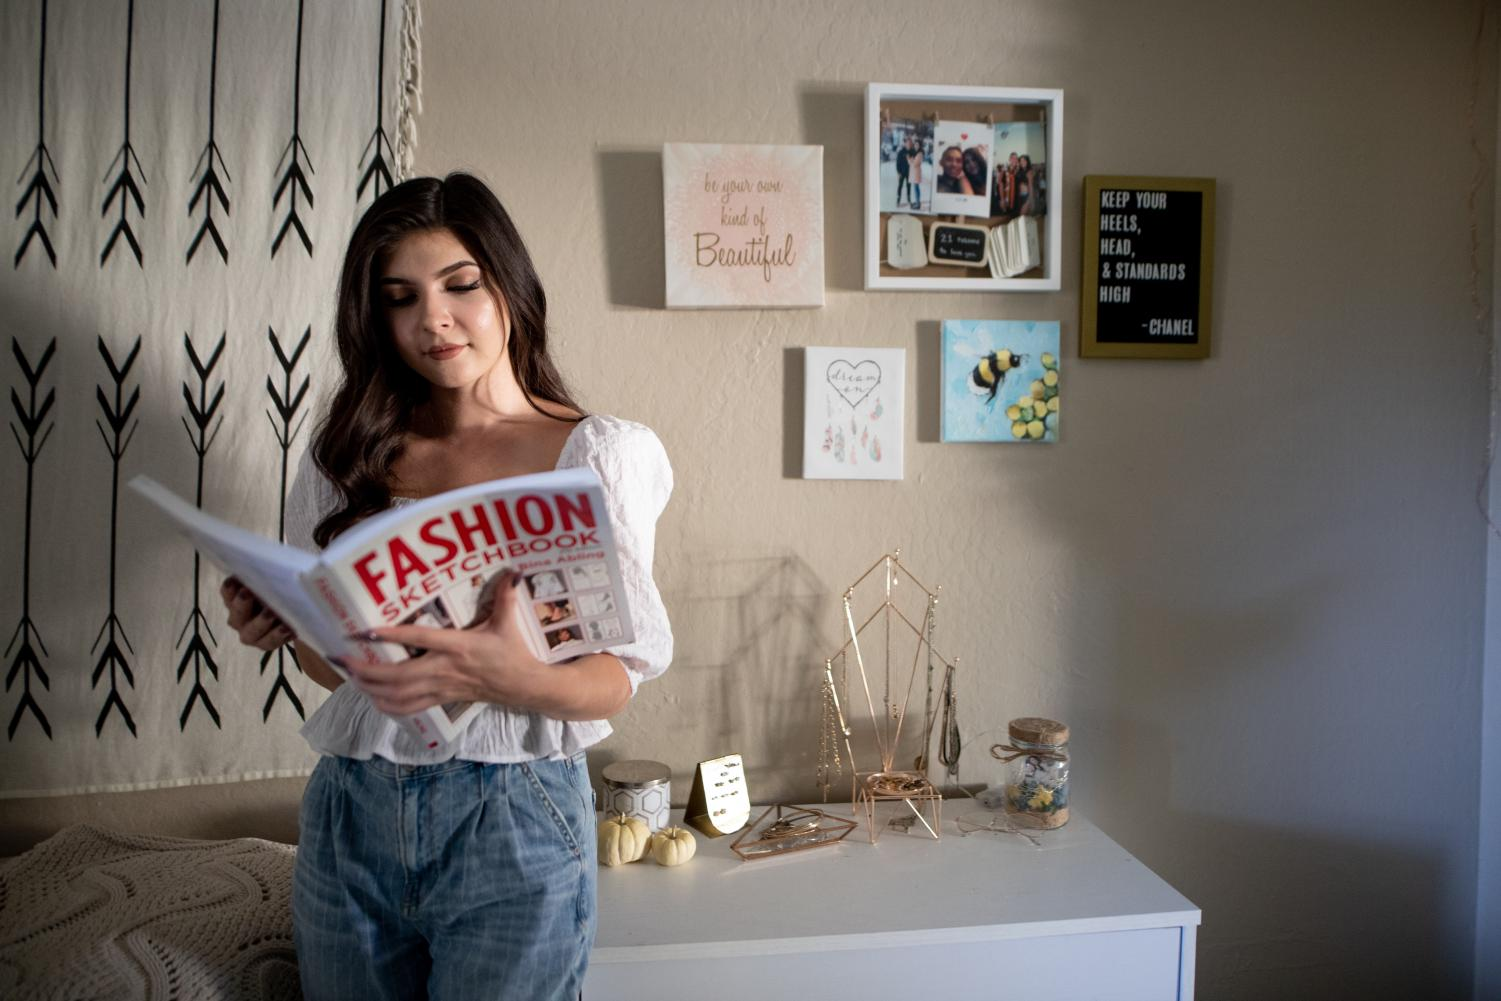 Quarantine has given Jaime Jolicouer more time to add decorations to her space that represent who she is. A little bee painting she did a few months ago hangs on display to show her creative side and a letterboard with a Coco Chanel quote represents her major and love for fashion.